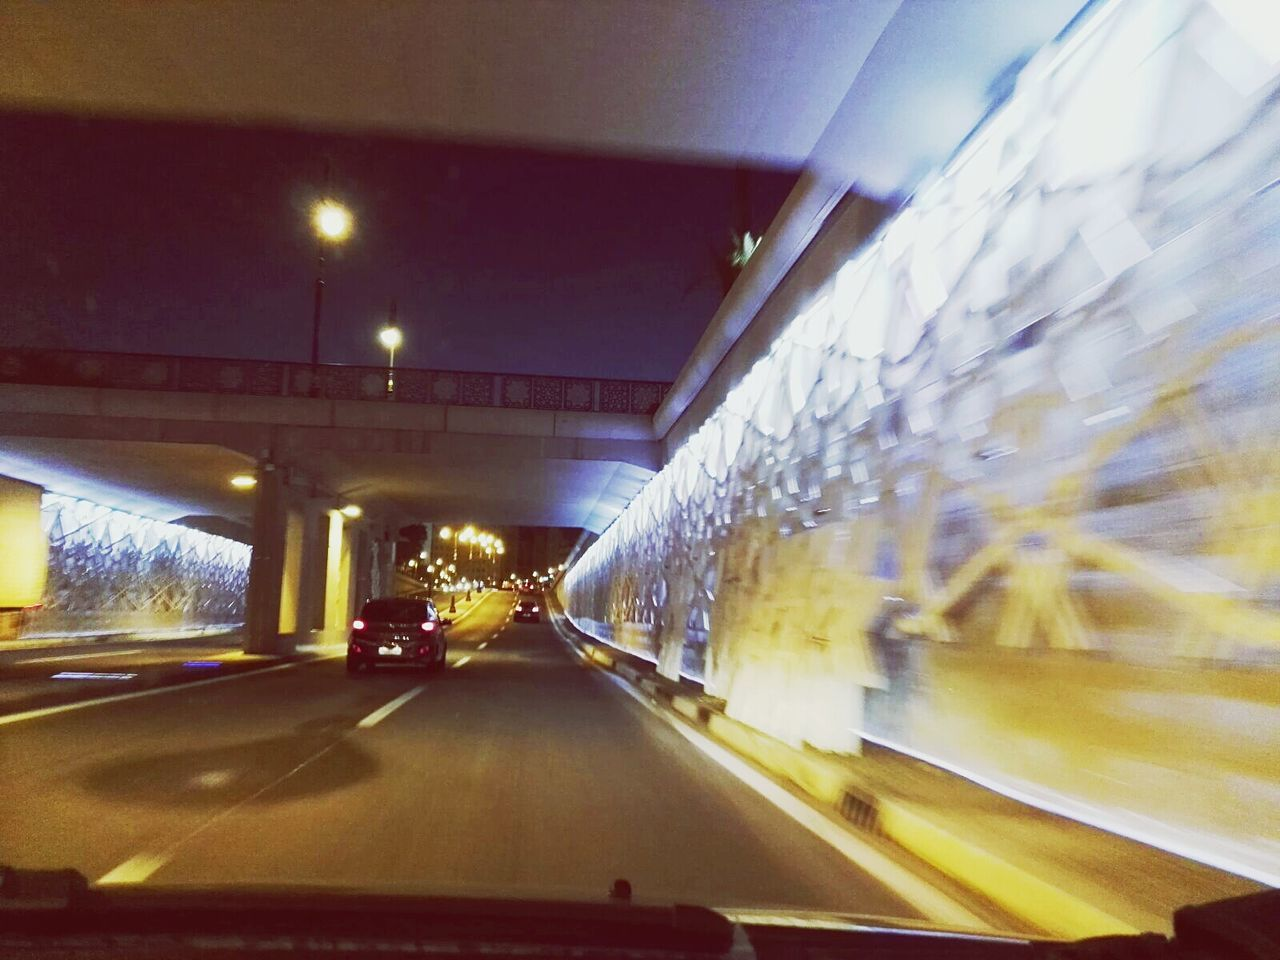 transportation, illuminated, car, the way forward, blurred motion, land vehicle, mode of transport, motion, road, no people, speed, night, indoors, architecture